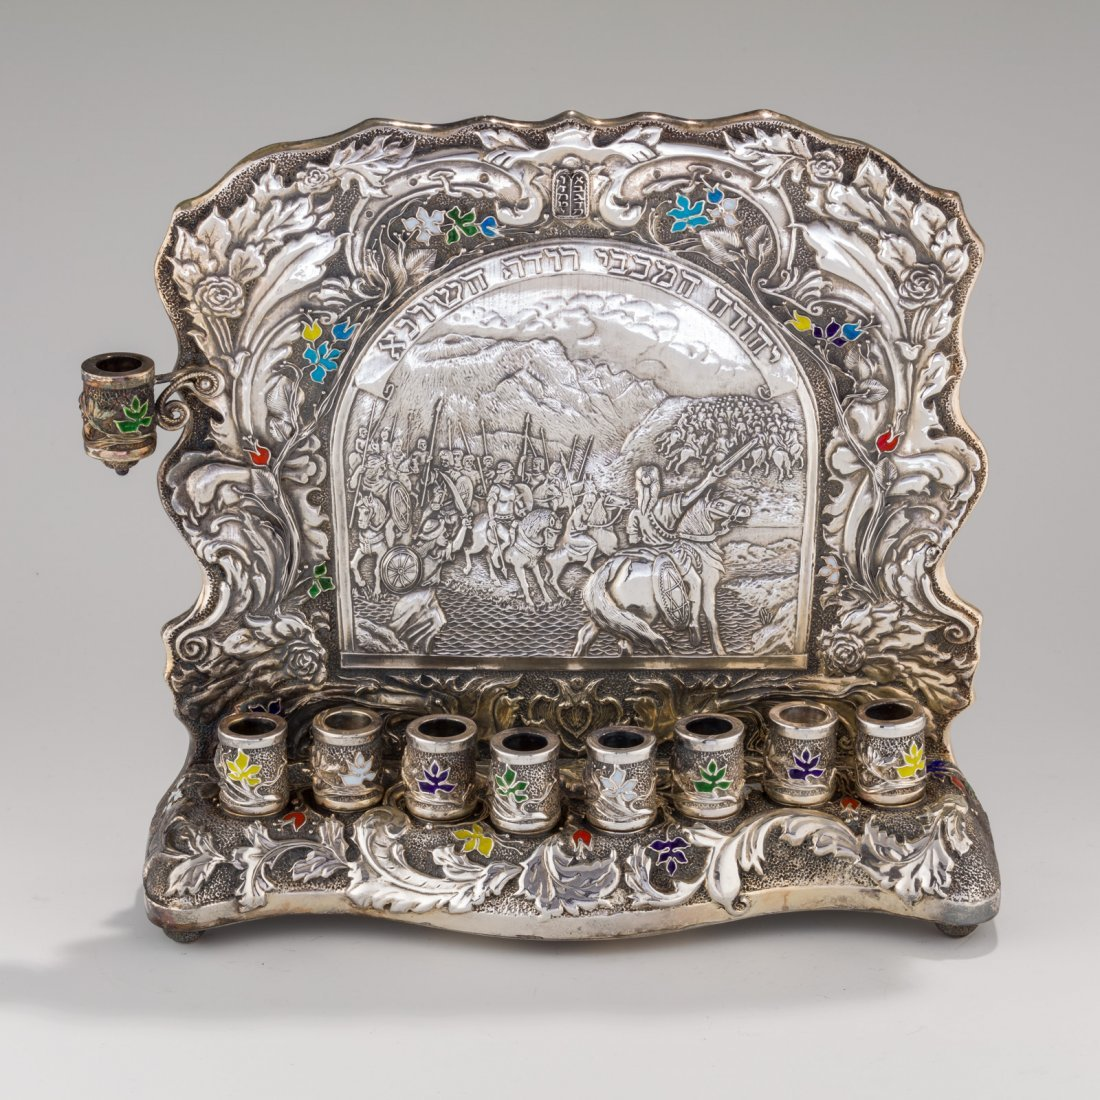 A SILVER AND ENAMEL CHANUKAH LAMP BY HENRYK WINOGRAD.